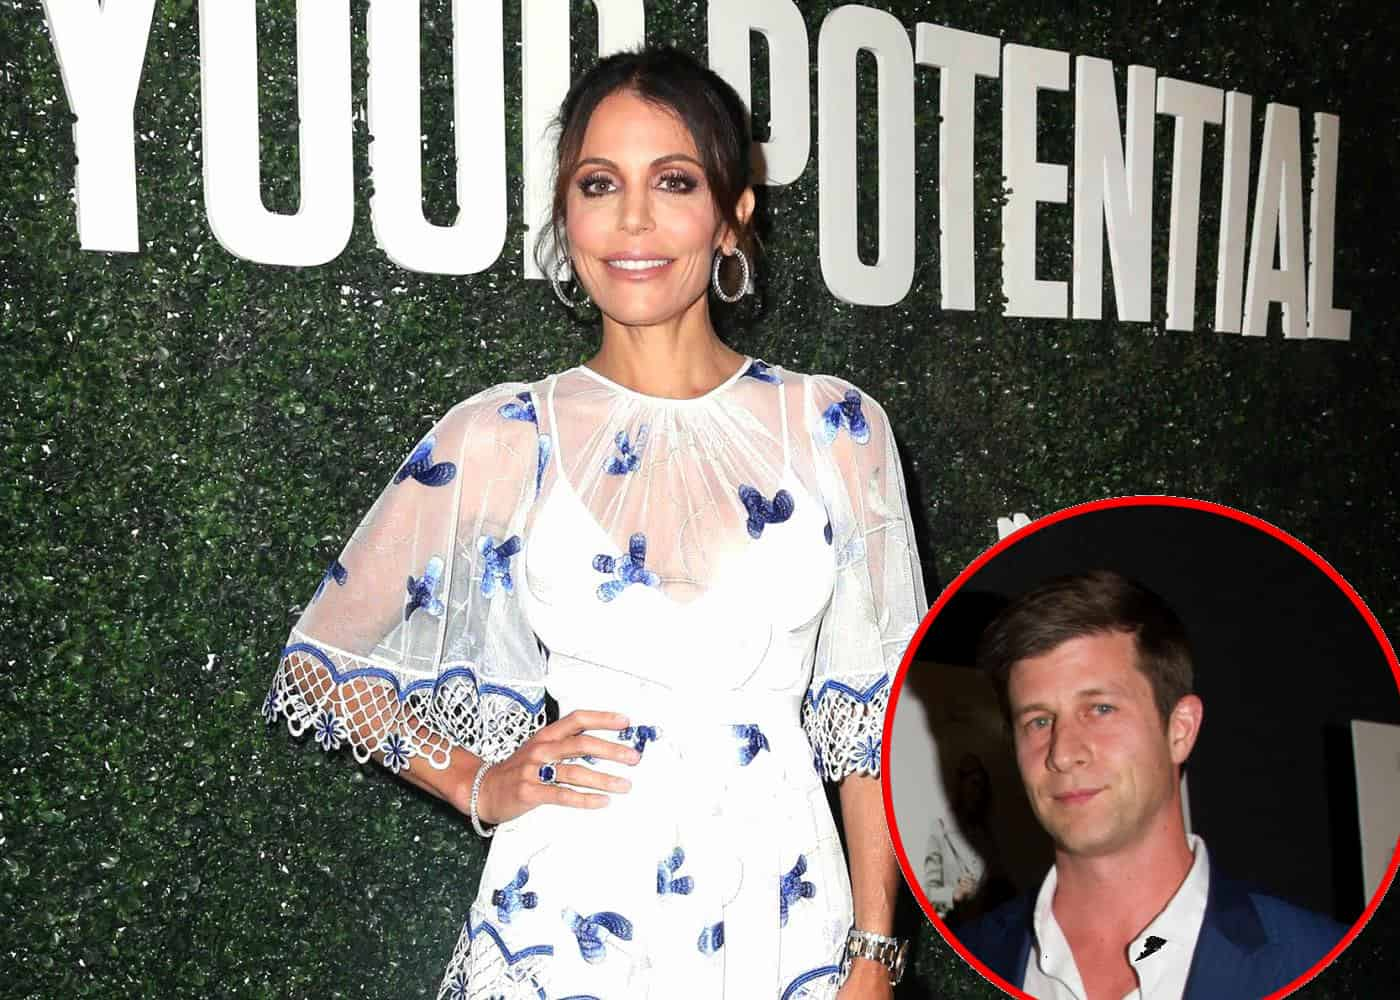 RHONY Star Bethenny Frankel Clarifies the Timeline of Her Relationships With Caterer Ex-Boyfriend, Paul Bernon and Dennis Shields